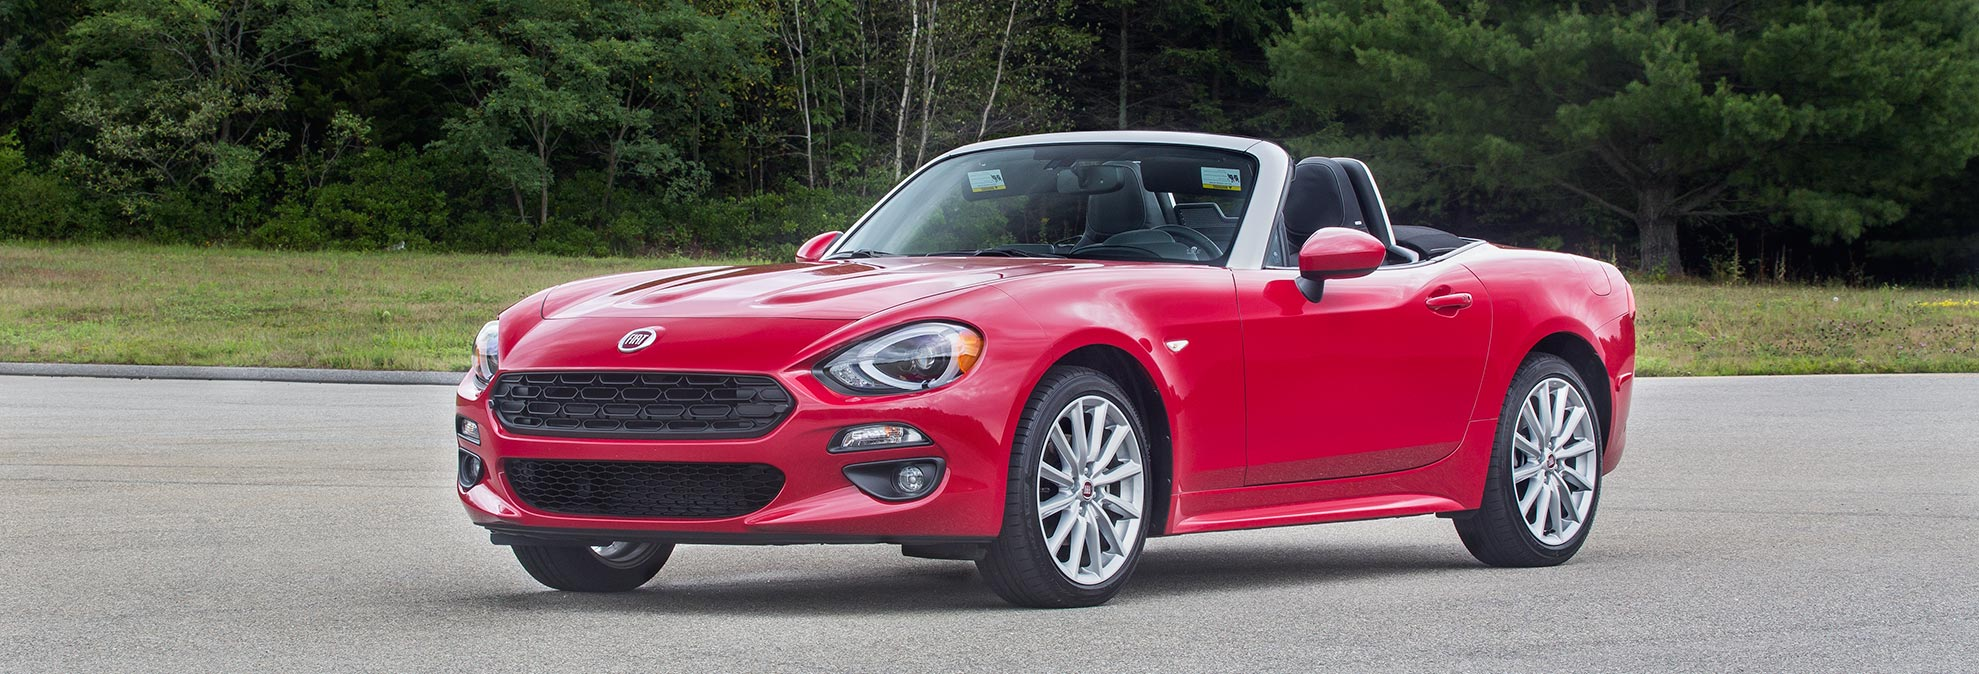 First Drive 2017 Fiat 124 Spider Consumer Reports Rear Axle Schematic